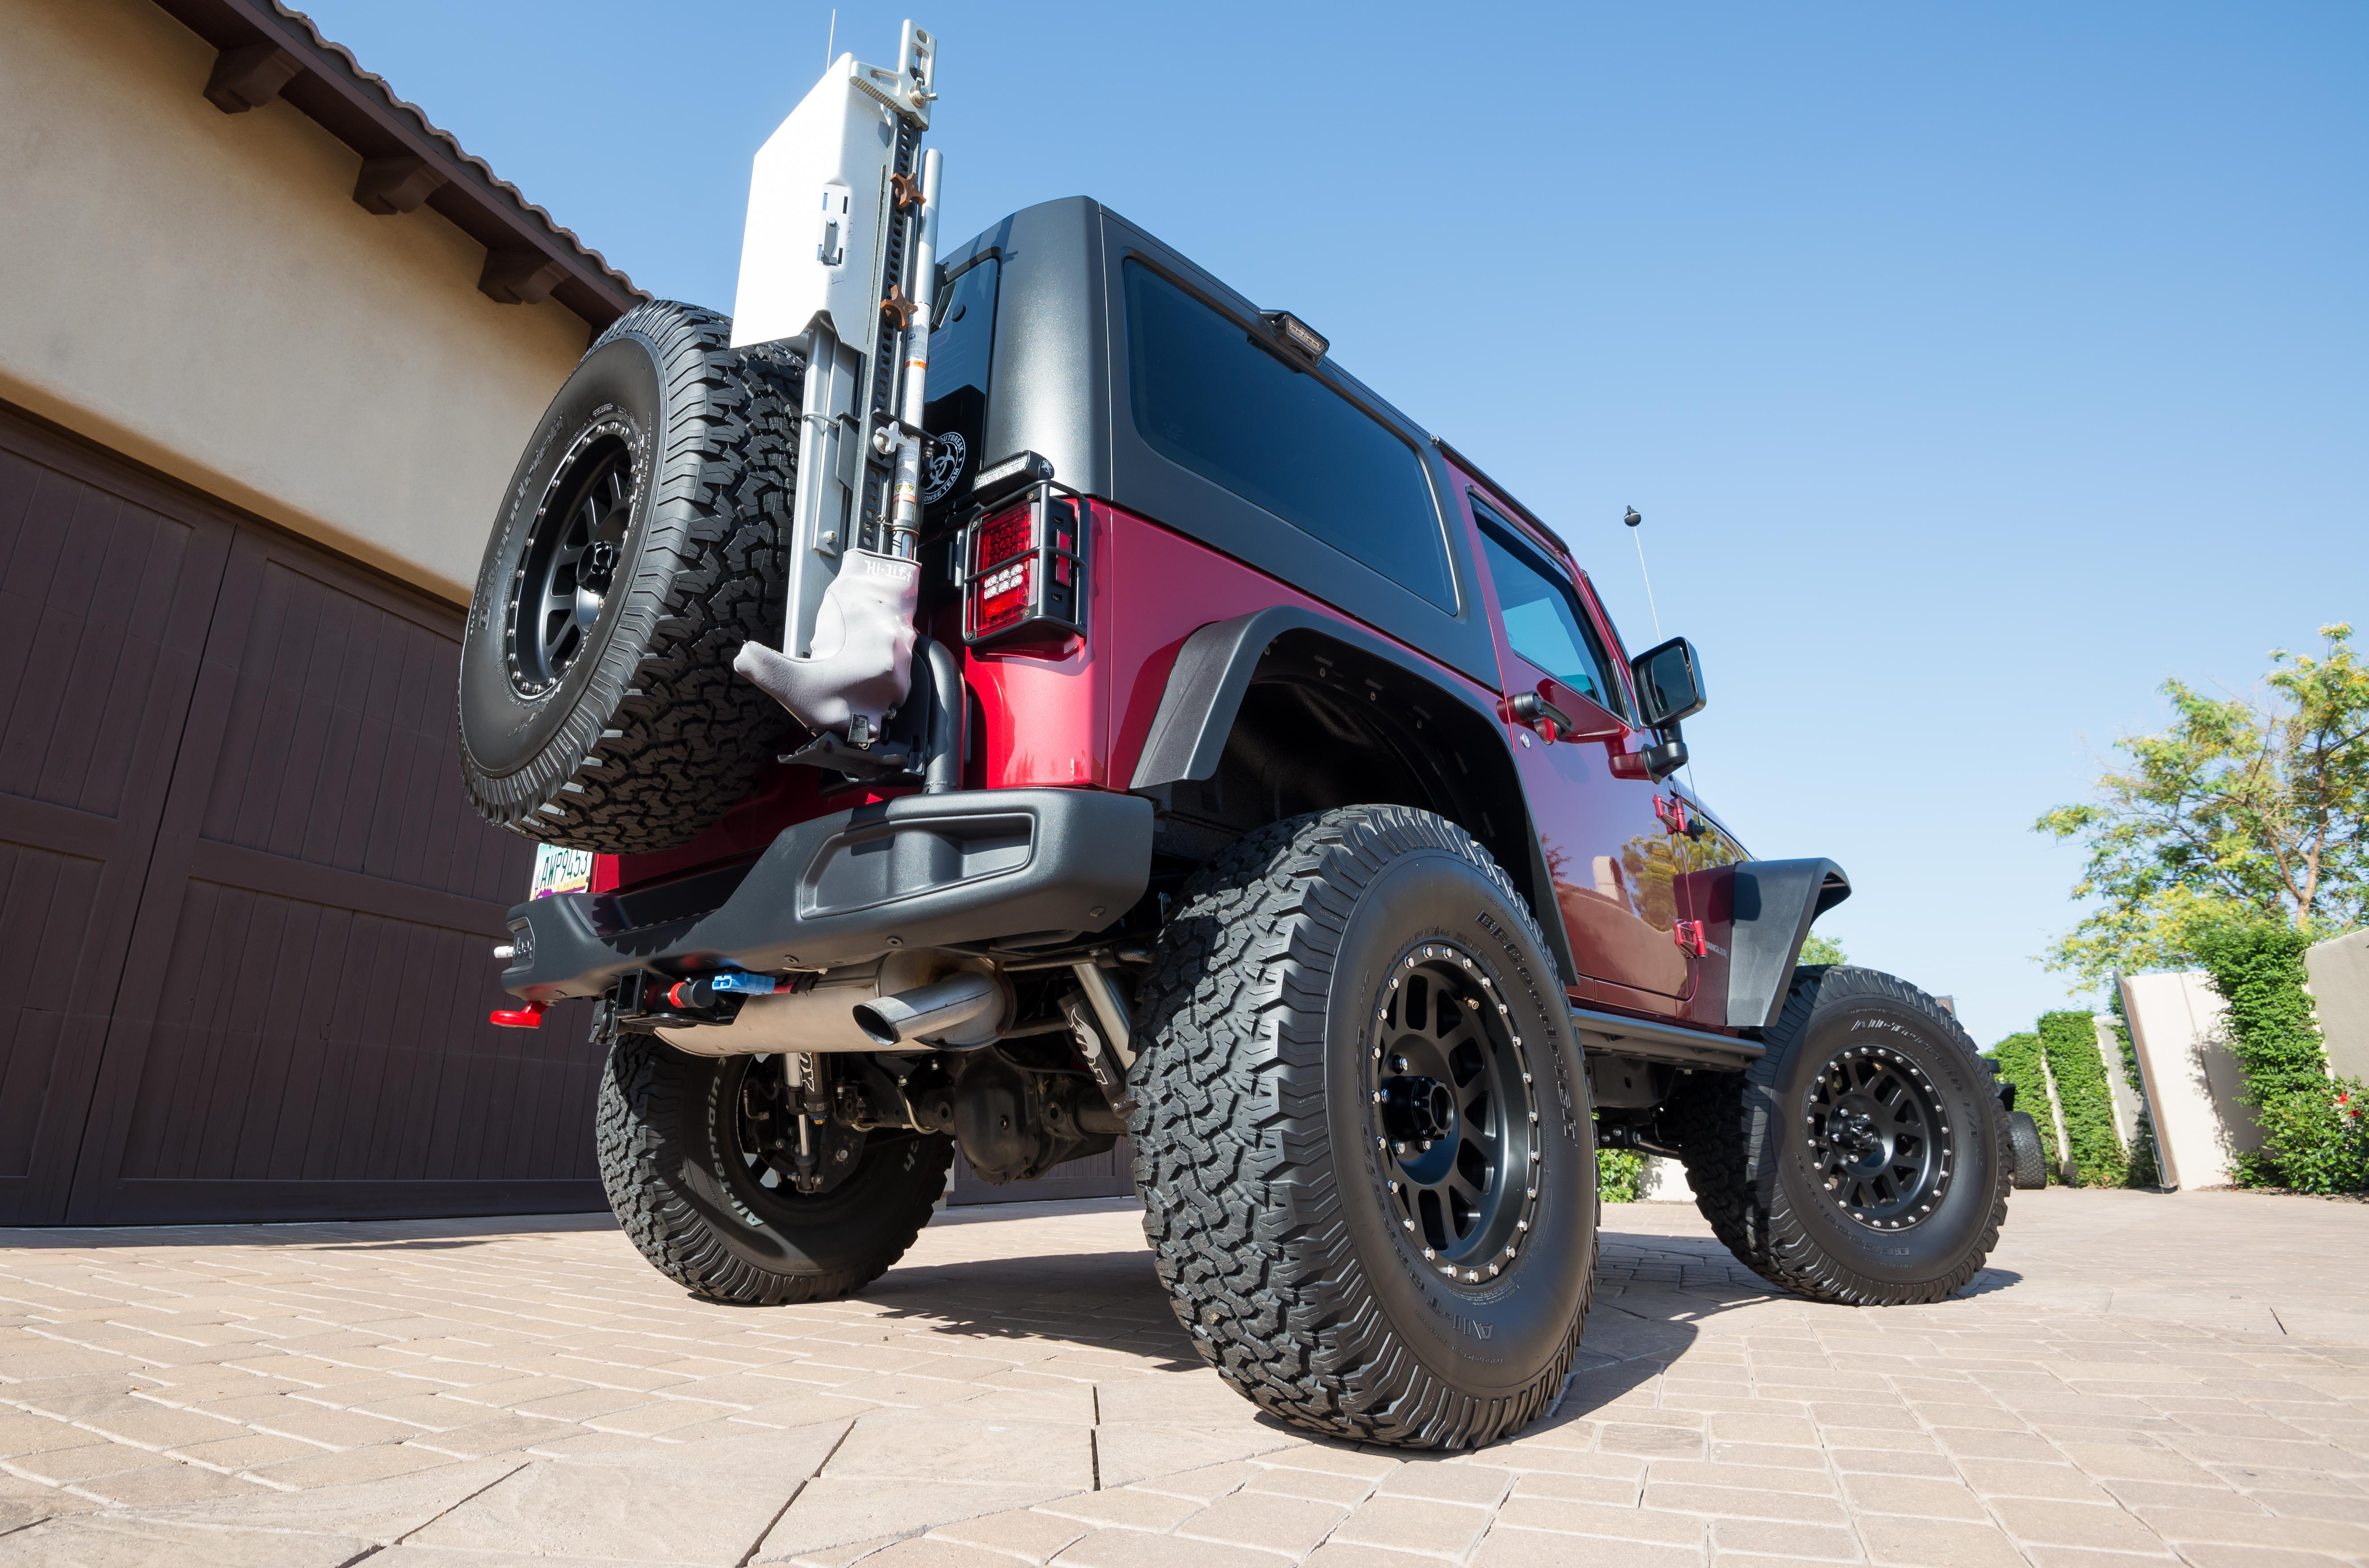 2012 Jeep JK Rubicon overland/zombie build - Expedition Portal